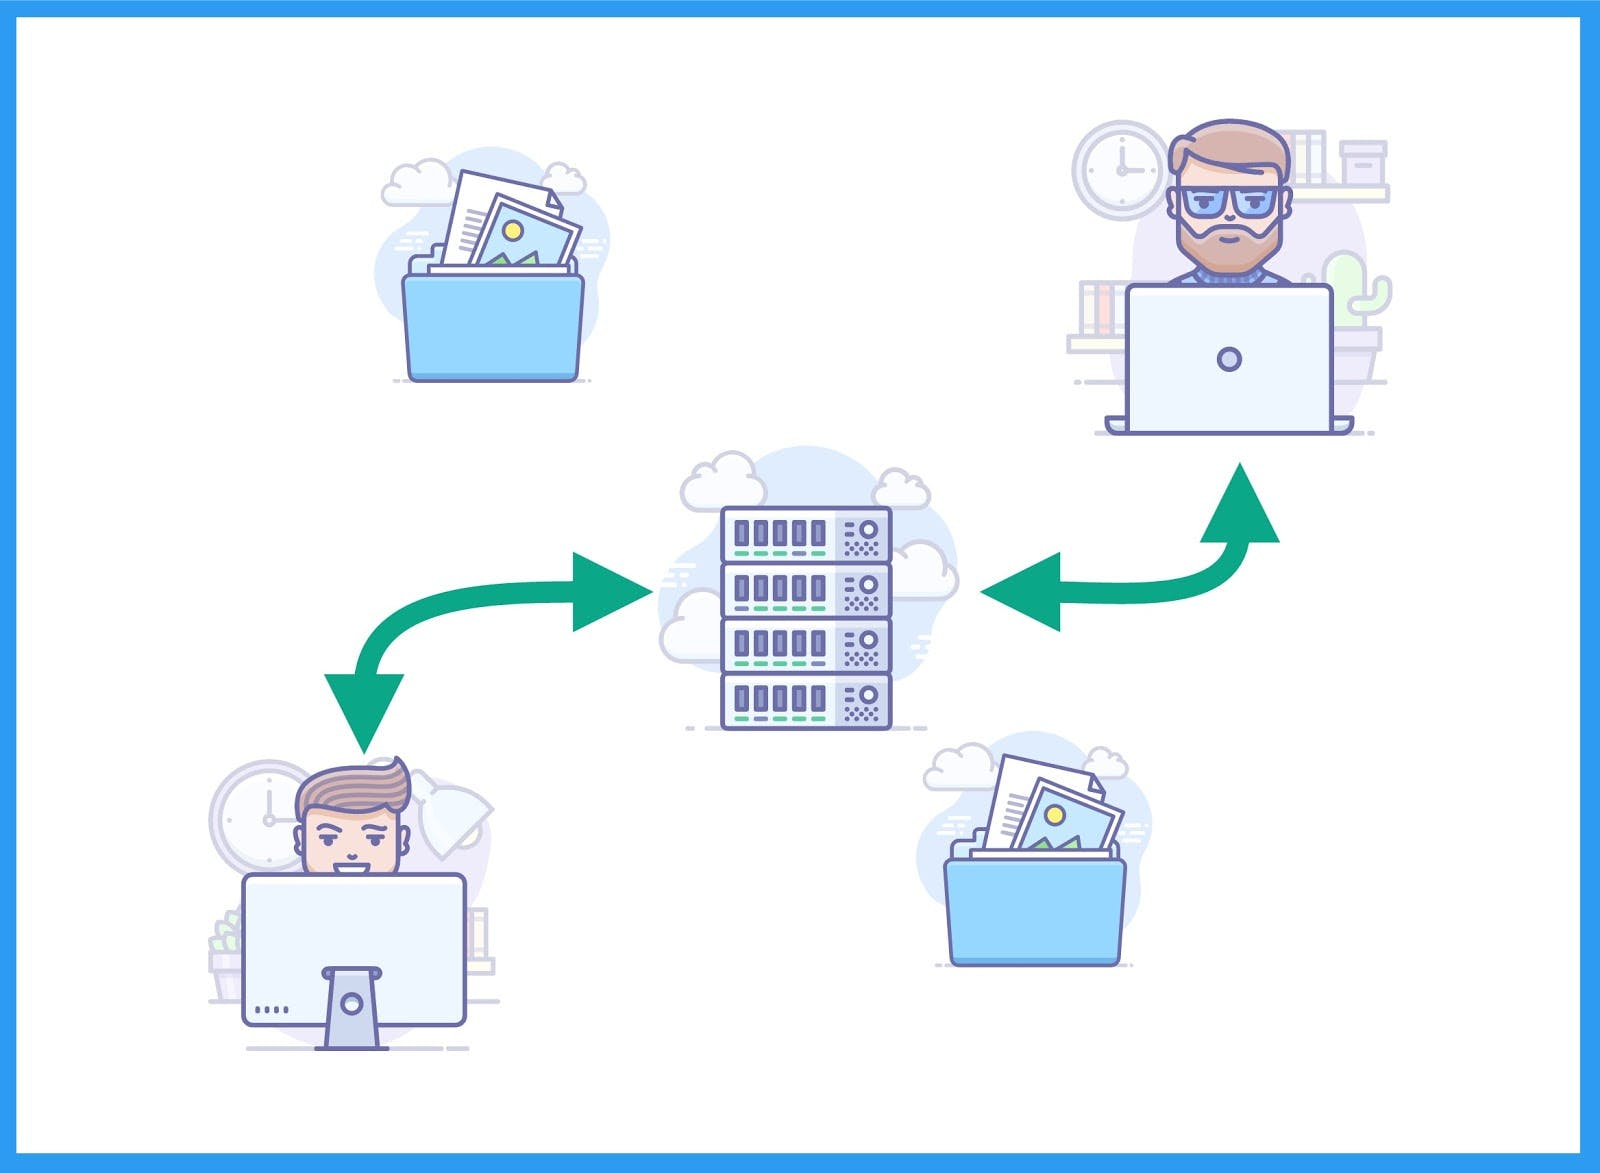 Flow of files via FTP in e-commerce.